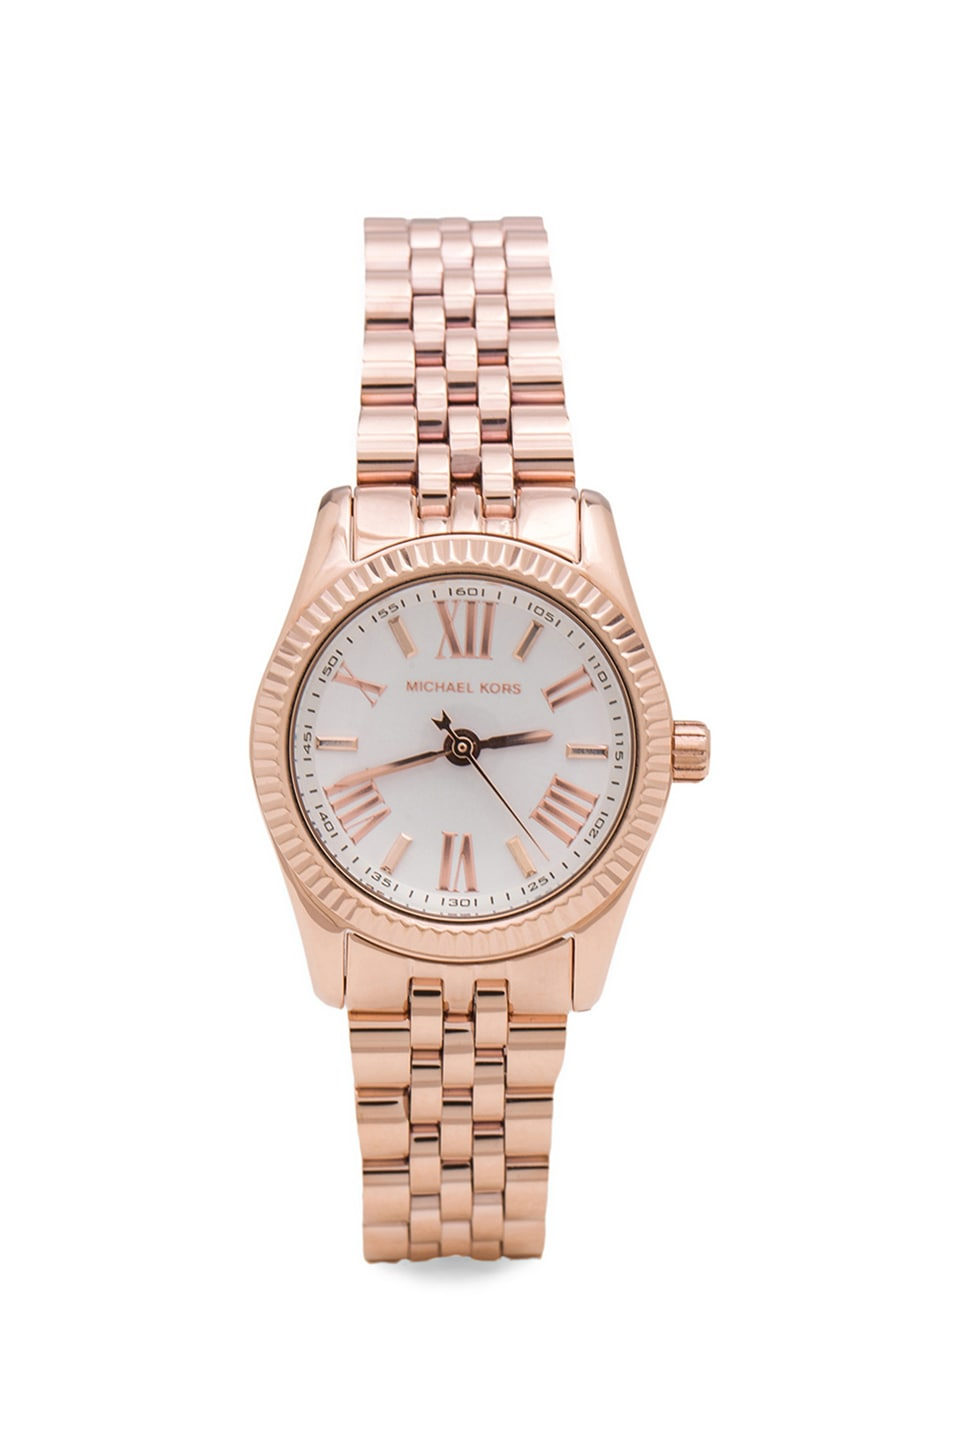 Michael Kors Petite Lexington in Rose Gold